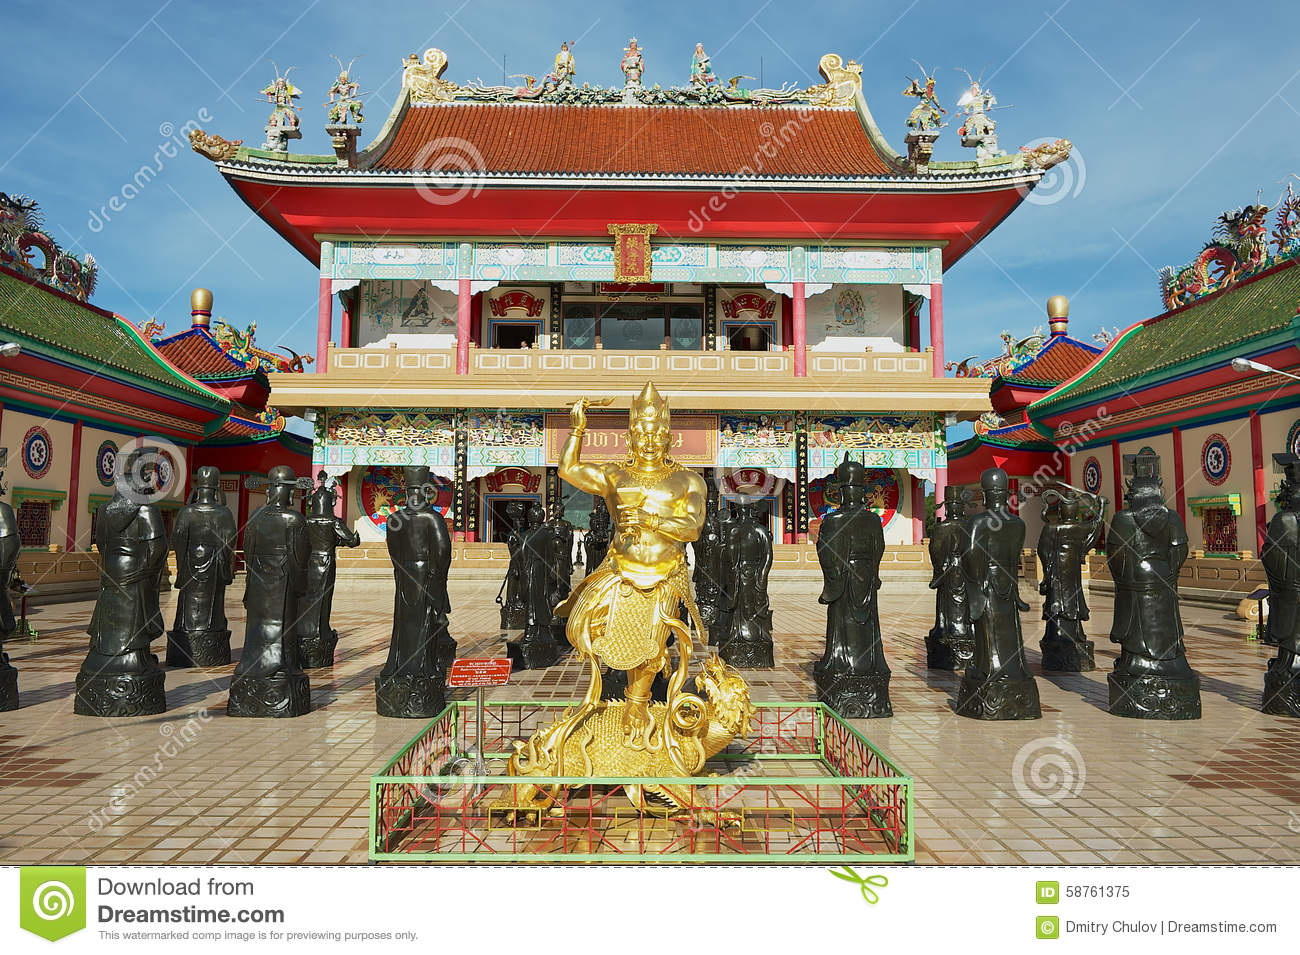 Exterior of the statues of Chinese Shaolin monks at Anek Kusala Sala (Viharn Sien) Chinese temple in Pattaya, Thailand.